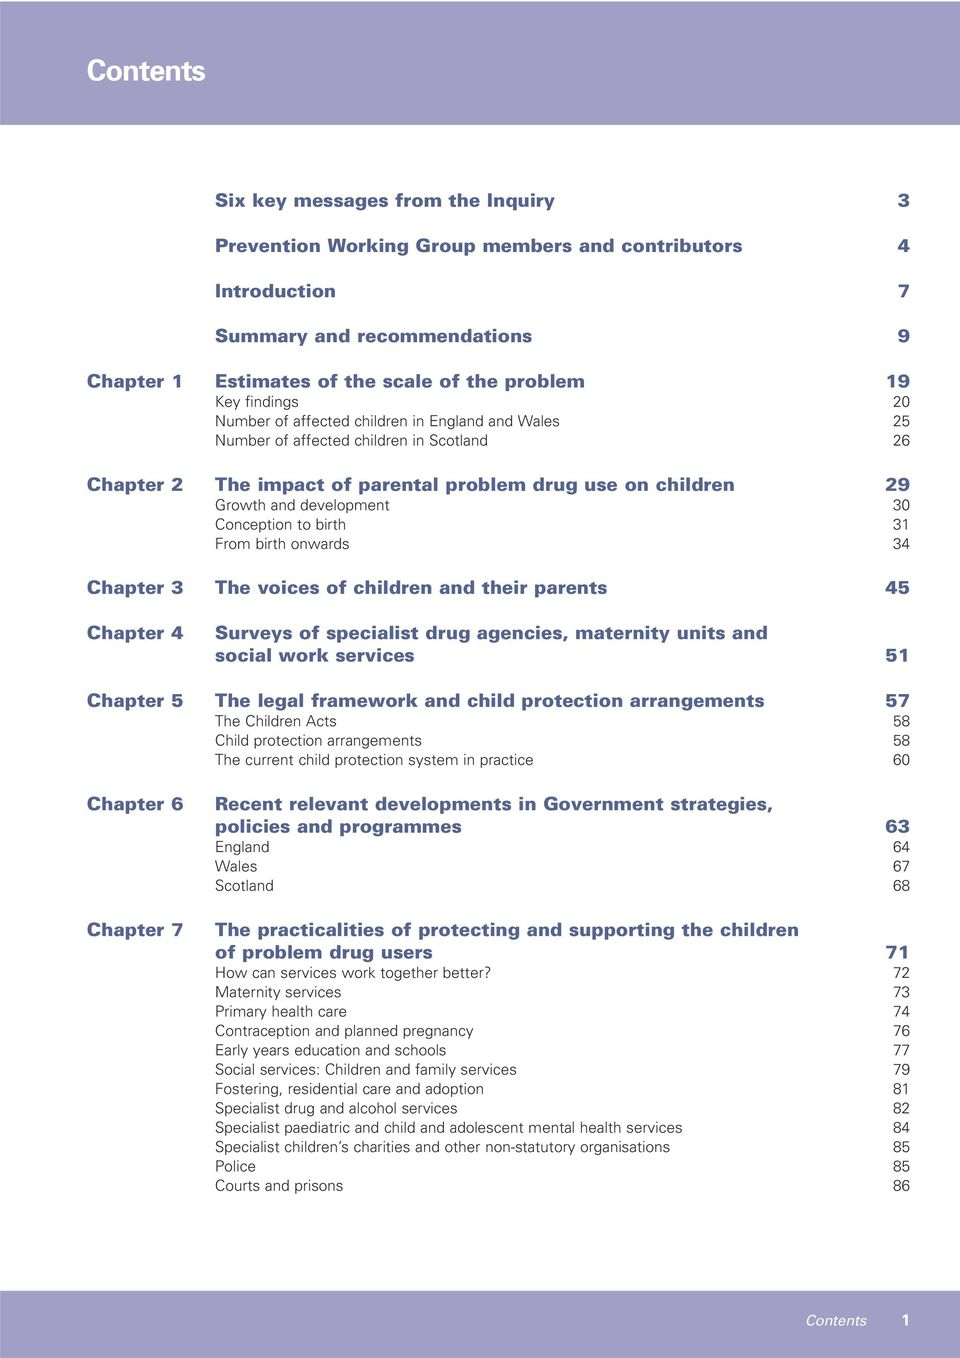 Conception to birth 31 From birth onwards 34 Chapter 3 The voices of children and their parents 45 Chapter 4 Surveys of specialist drug agencies, maternity units and social work services 51 Chapter 5